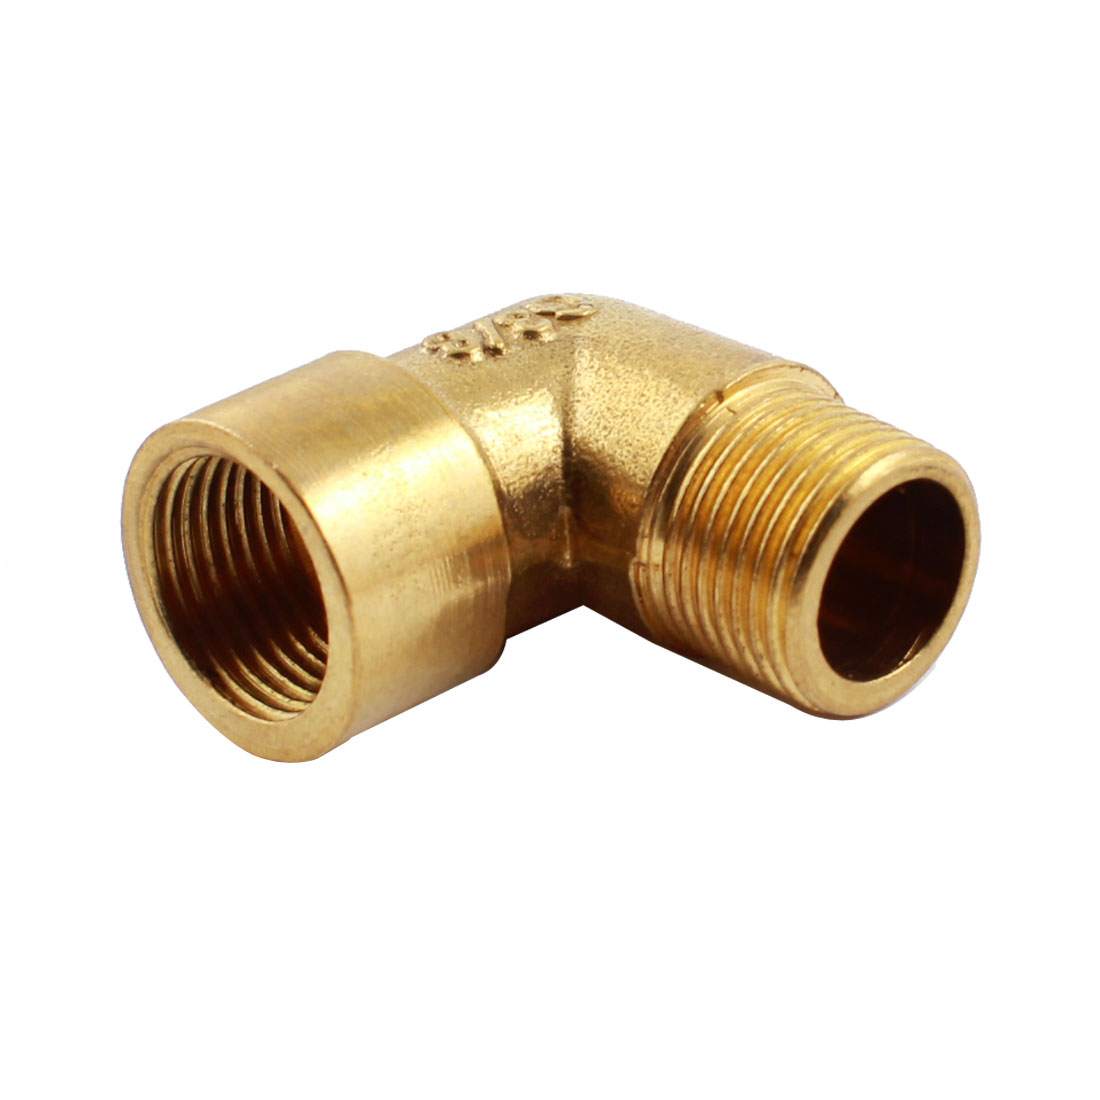 3/8PT x 3/8PT M/F Threaded Brass Right Angle Male to Female Joint Connector for Water Fuel Pipe